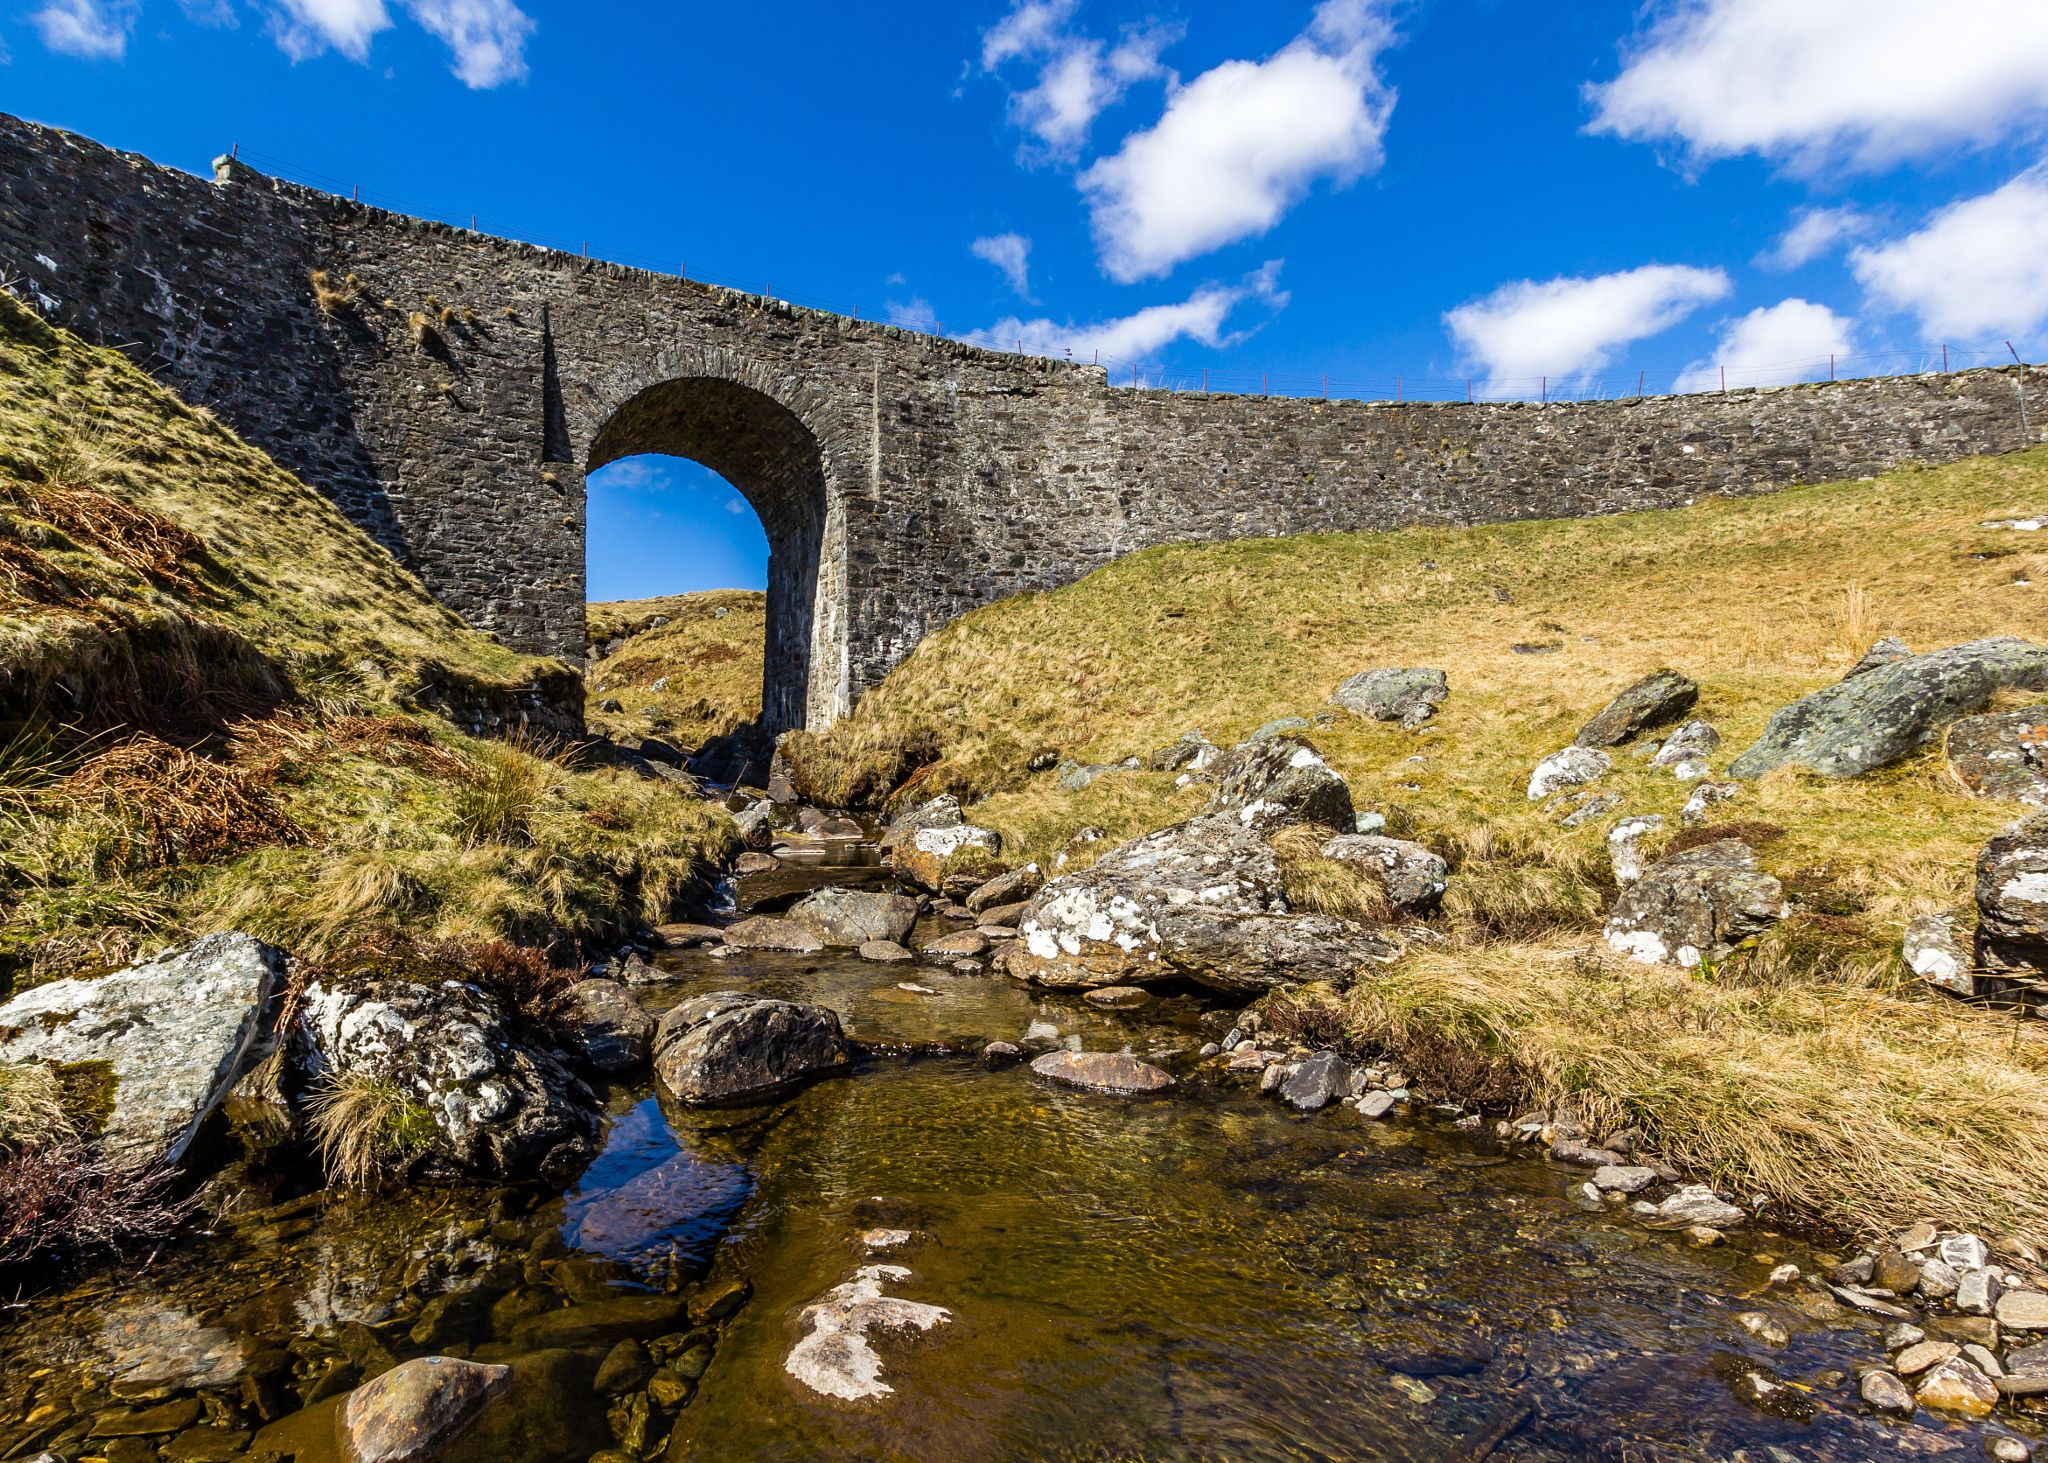 Bridge, Ben Lawers, Scotland by Raymond Carruthers on 500px